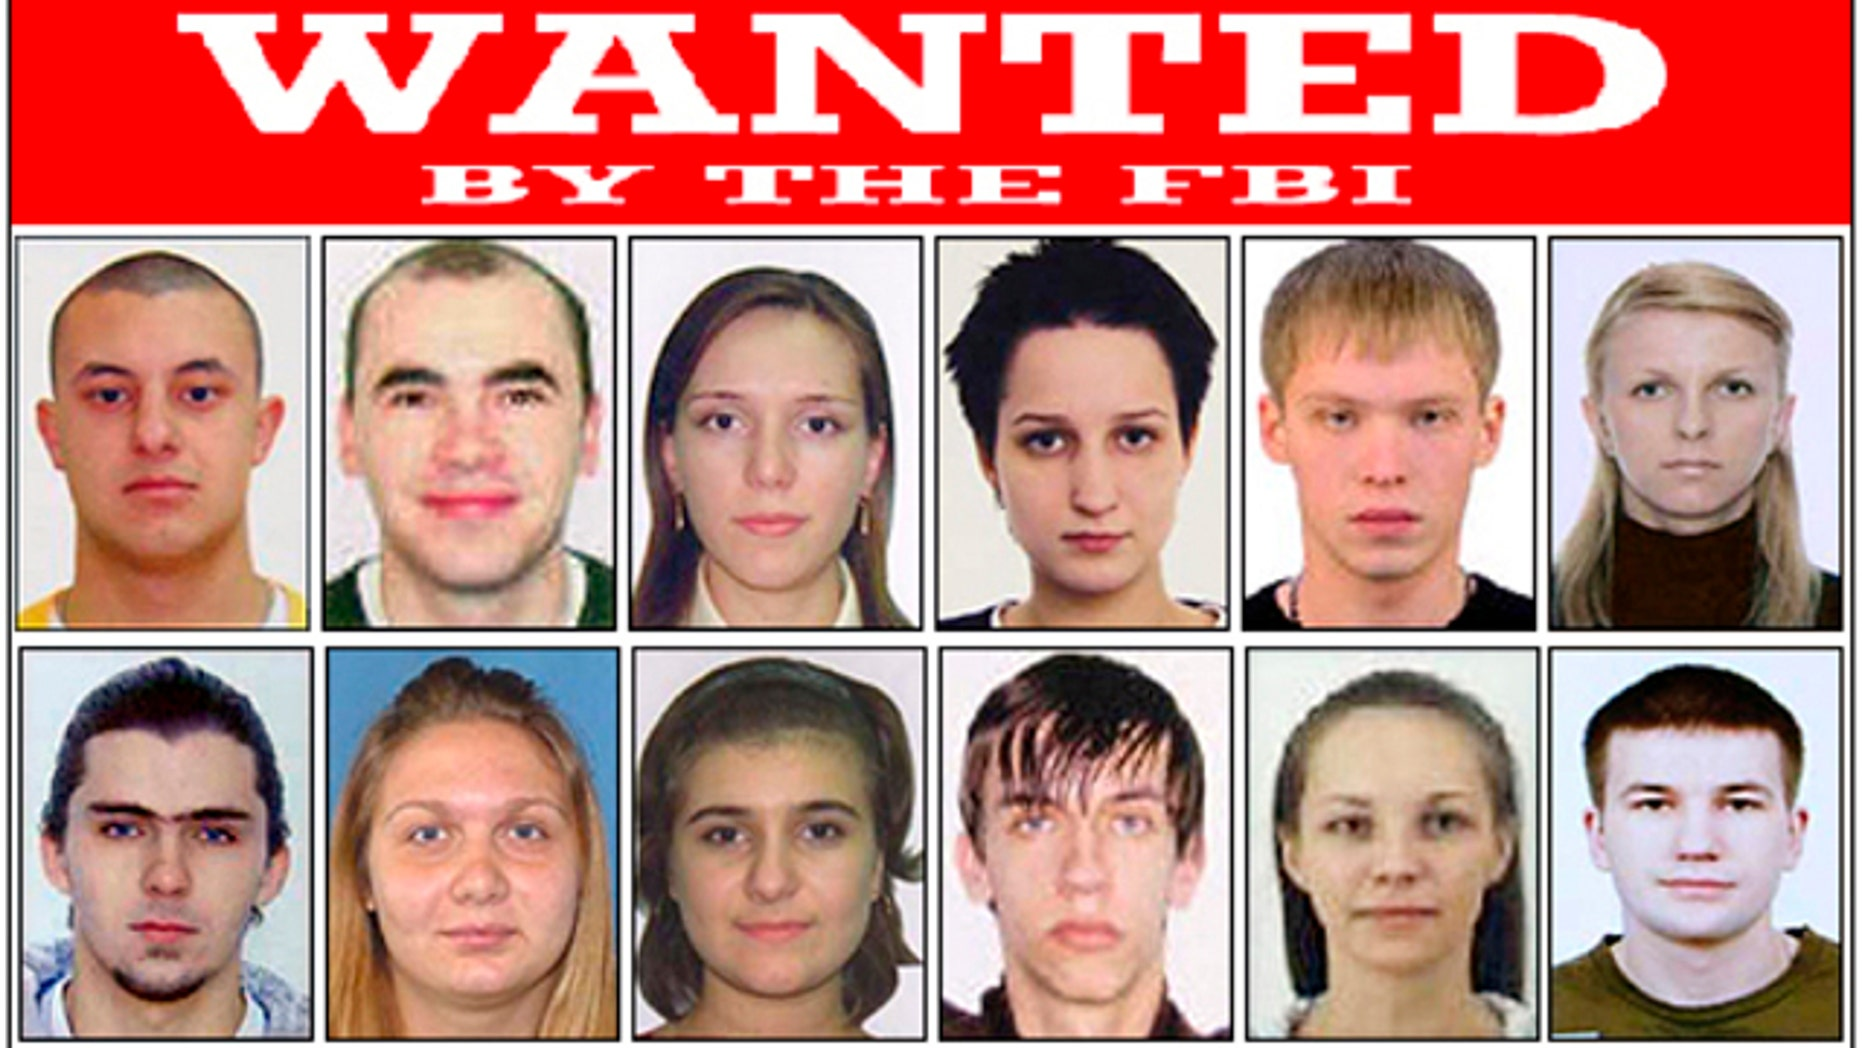 """This poster released by the FBI shows photos of individuals wanted by the FBI and shows Eastern European Cyber Criminals, wanted on a variety of federal charges stemming from criminal activities including money laundering, bank fraud, passport fraud, and identity theft in New York. Complaints were issued by the United States District Court, Southern District of New York, in September of 2010. The court records of Operation Trident Breach reveal a surprise: For all the high-tech tools and tactics employed in these computer crimes, platoons of low-level human foot soldiers, known as """"money mules,"""" are the indispensable cogs in the cybercriminals' money machine."""